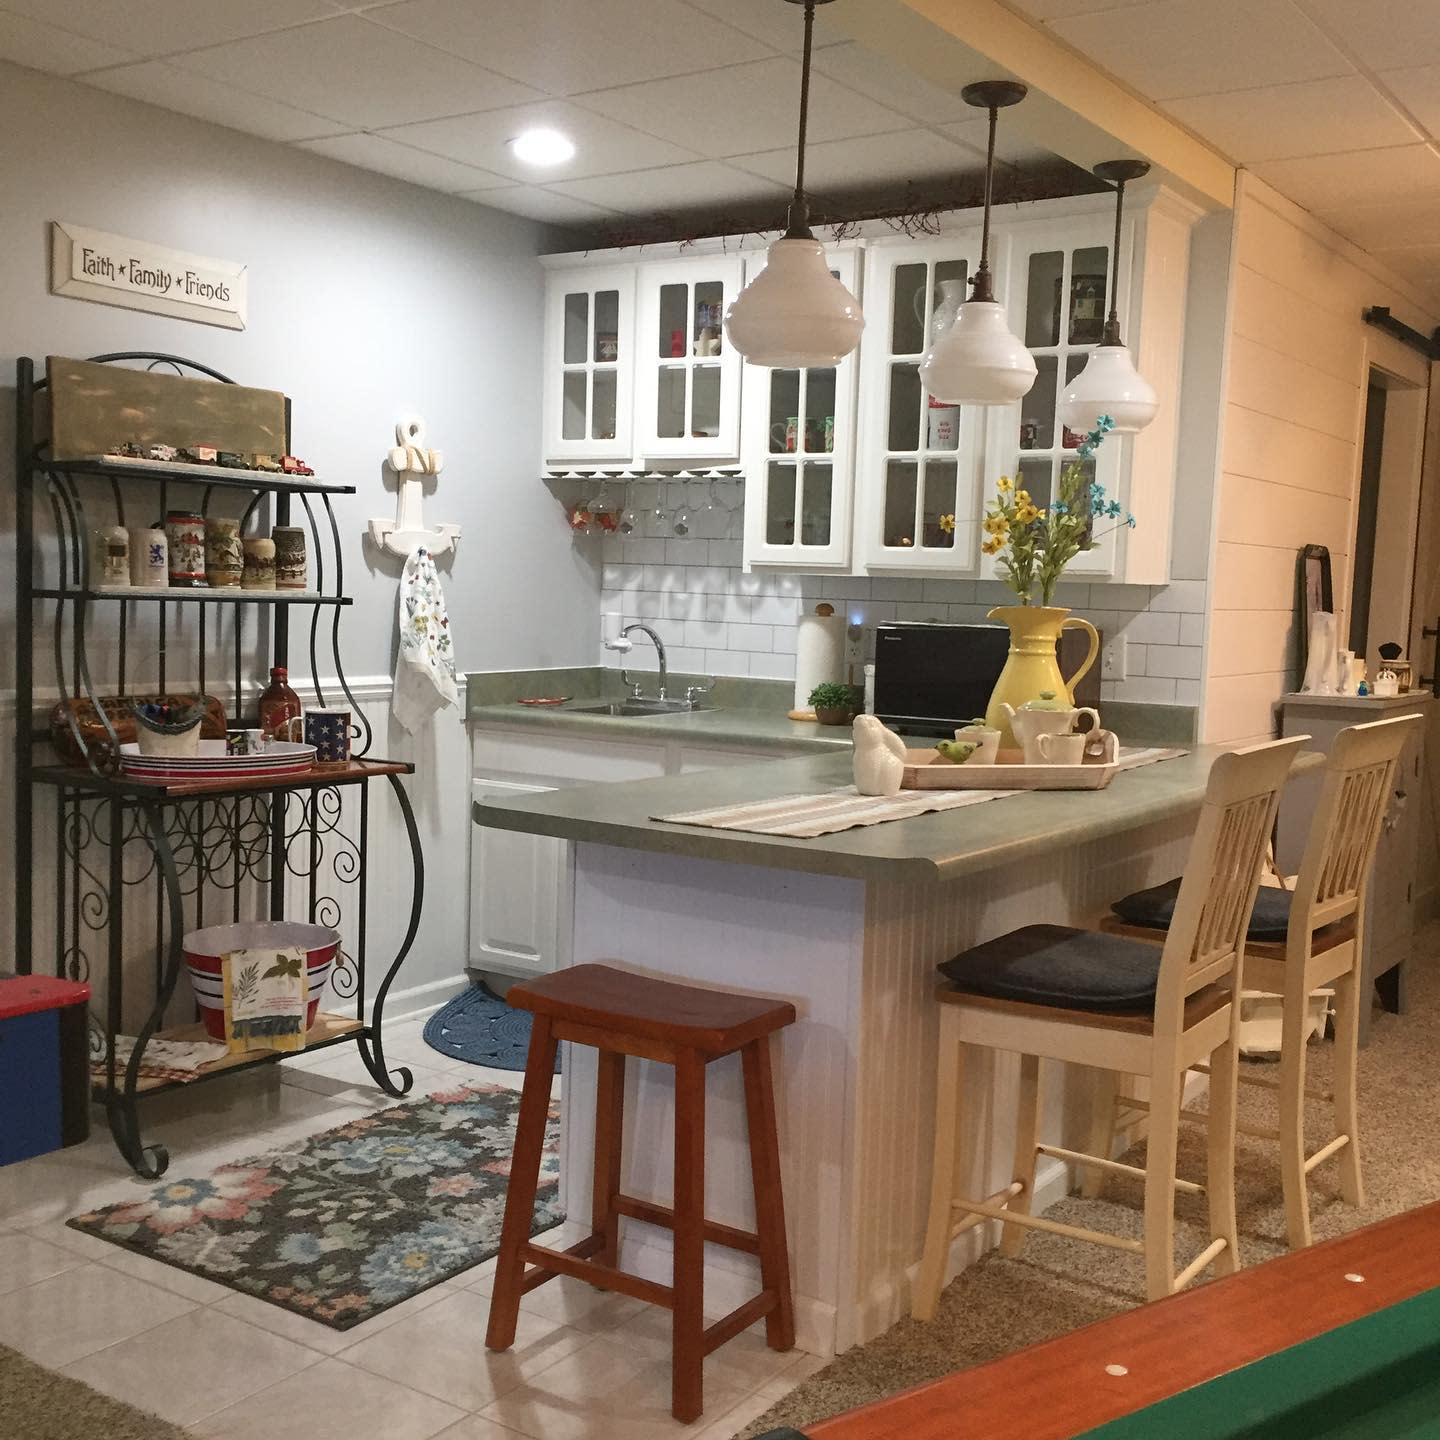 DIY Basement Kitchen Ideas -thorncreekfarmhouse